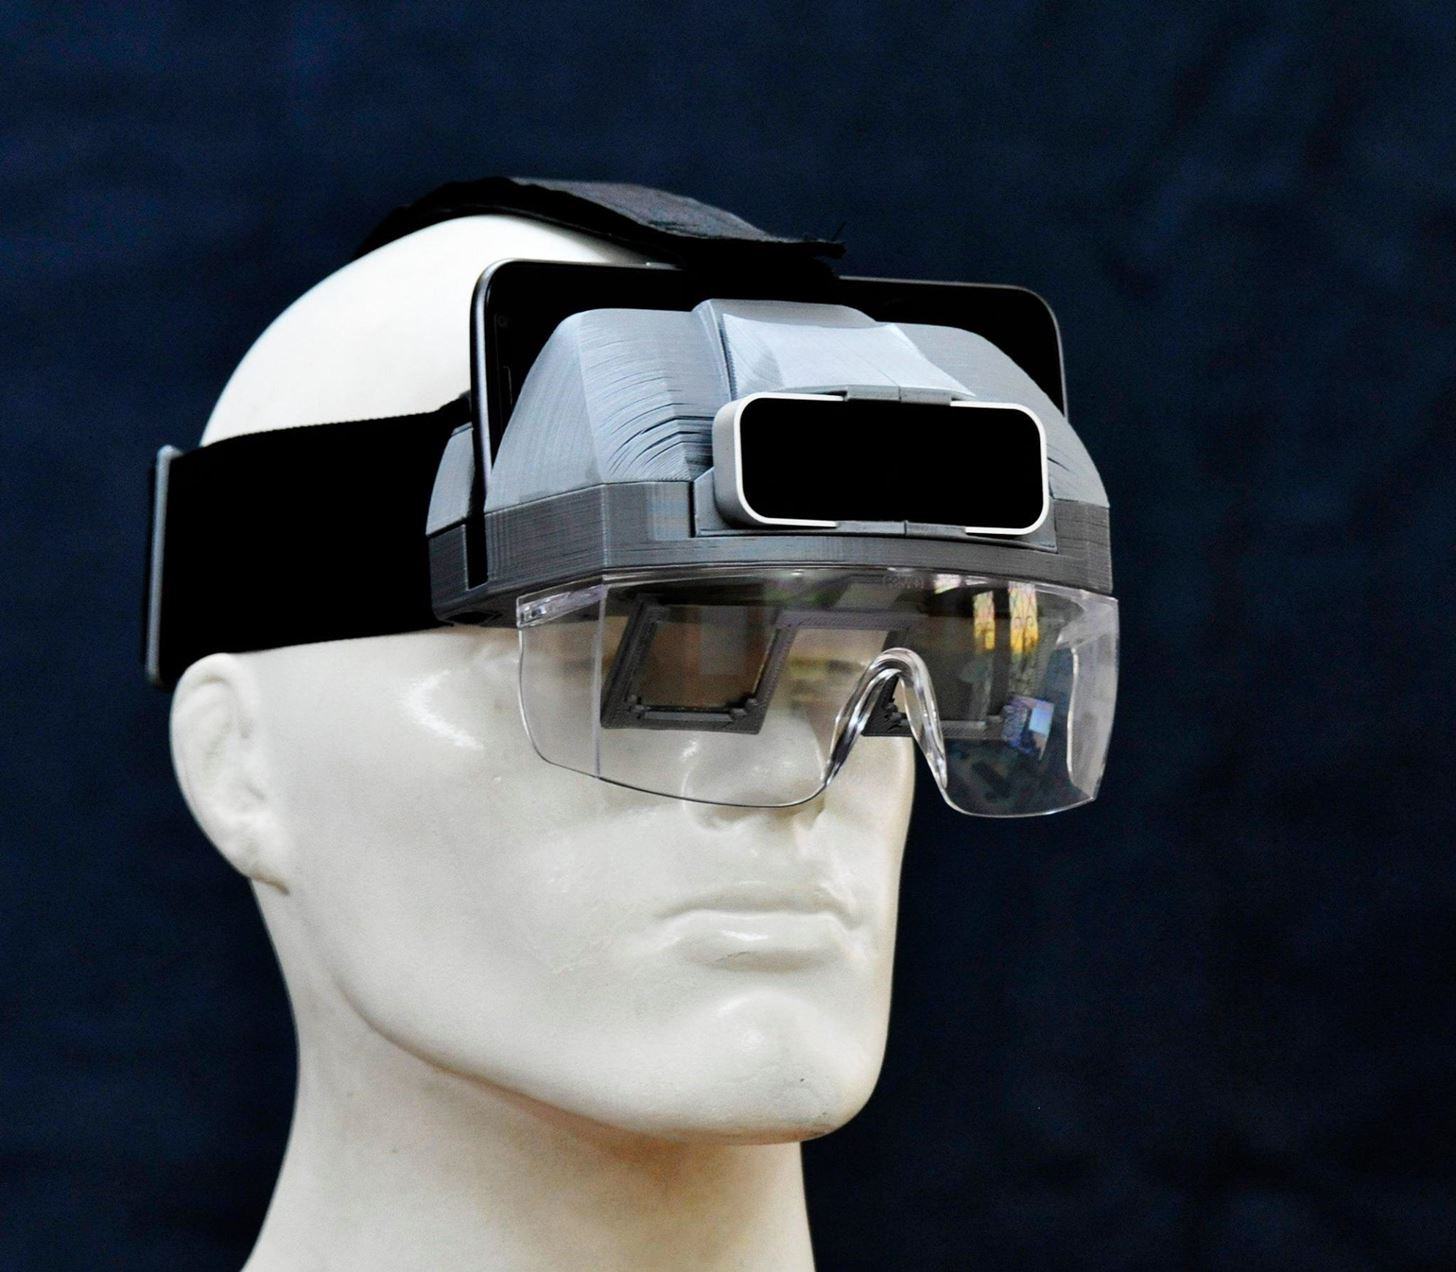 HeadsupAR Turns Smartphones into Mixed Reality Headsets